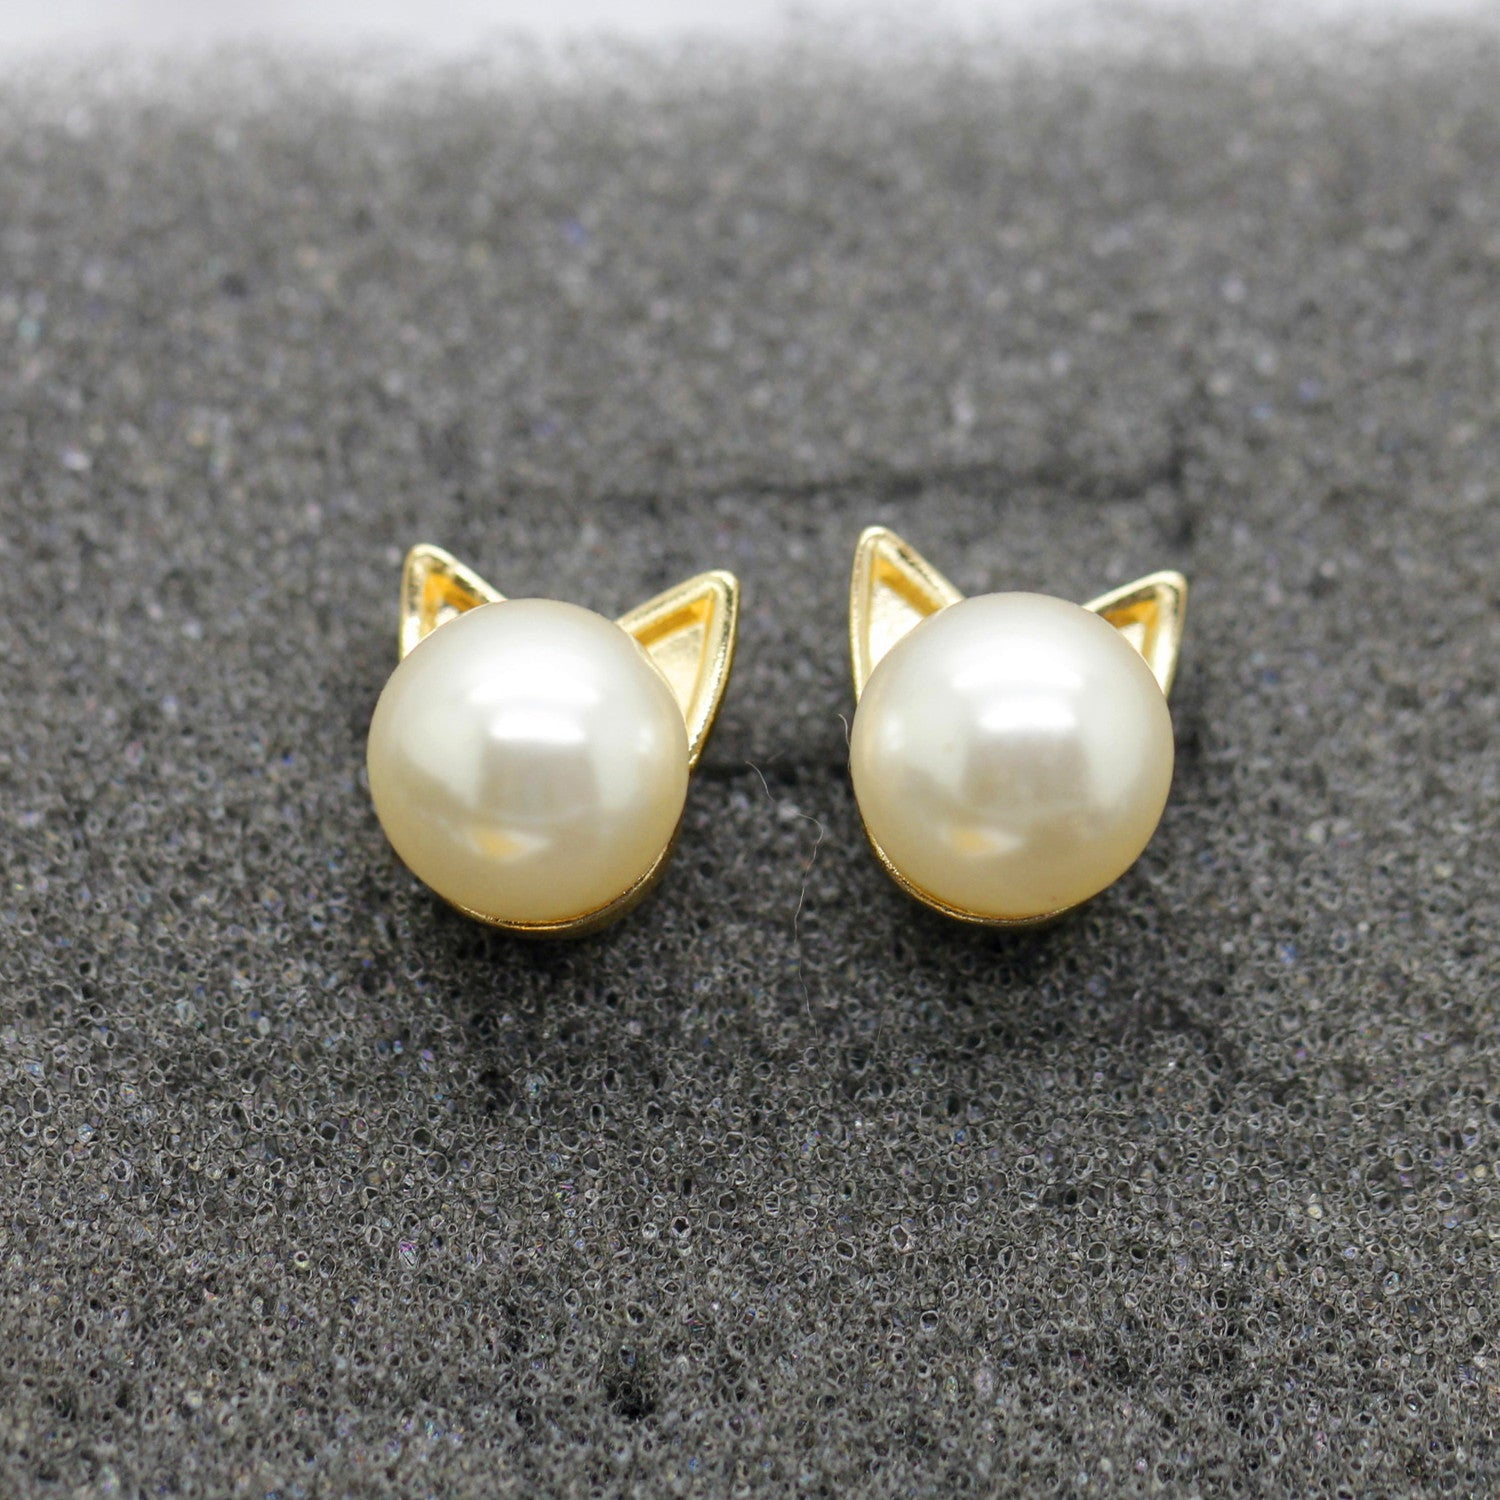 Gold and Pearl Mini Stud Cat Earrings - Thick 'N' Curvy Shop - 2